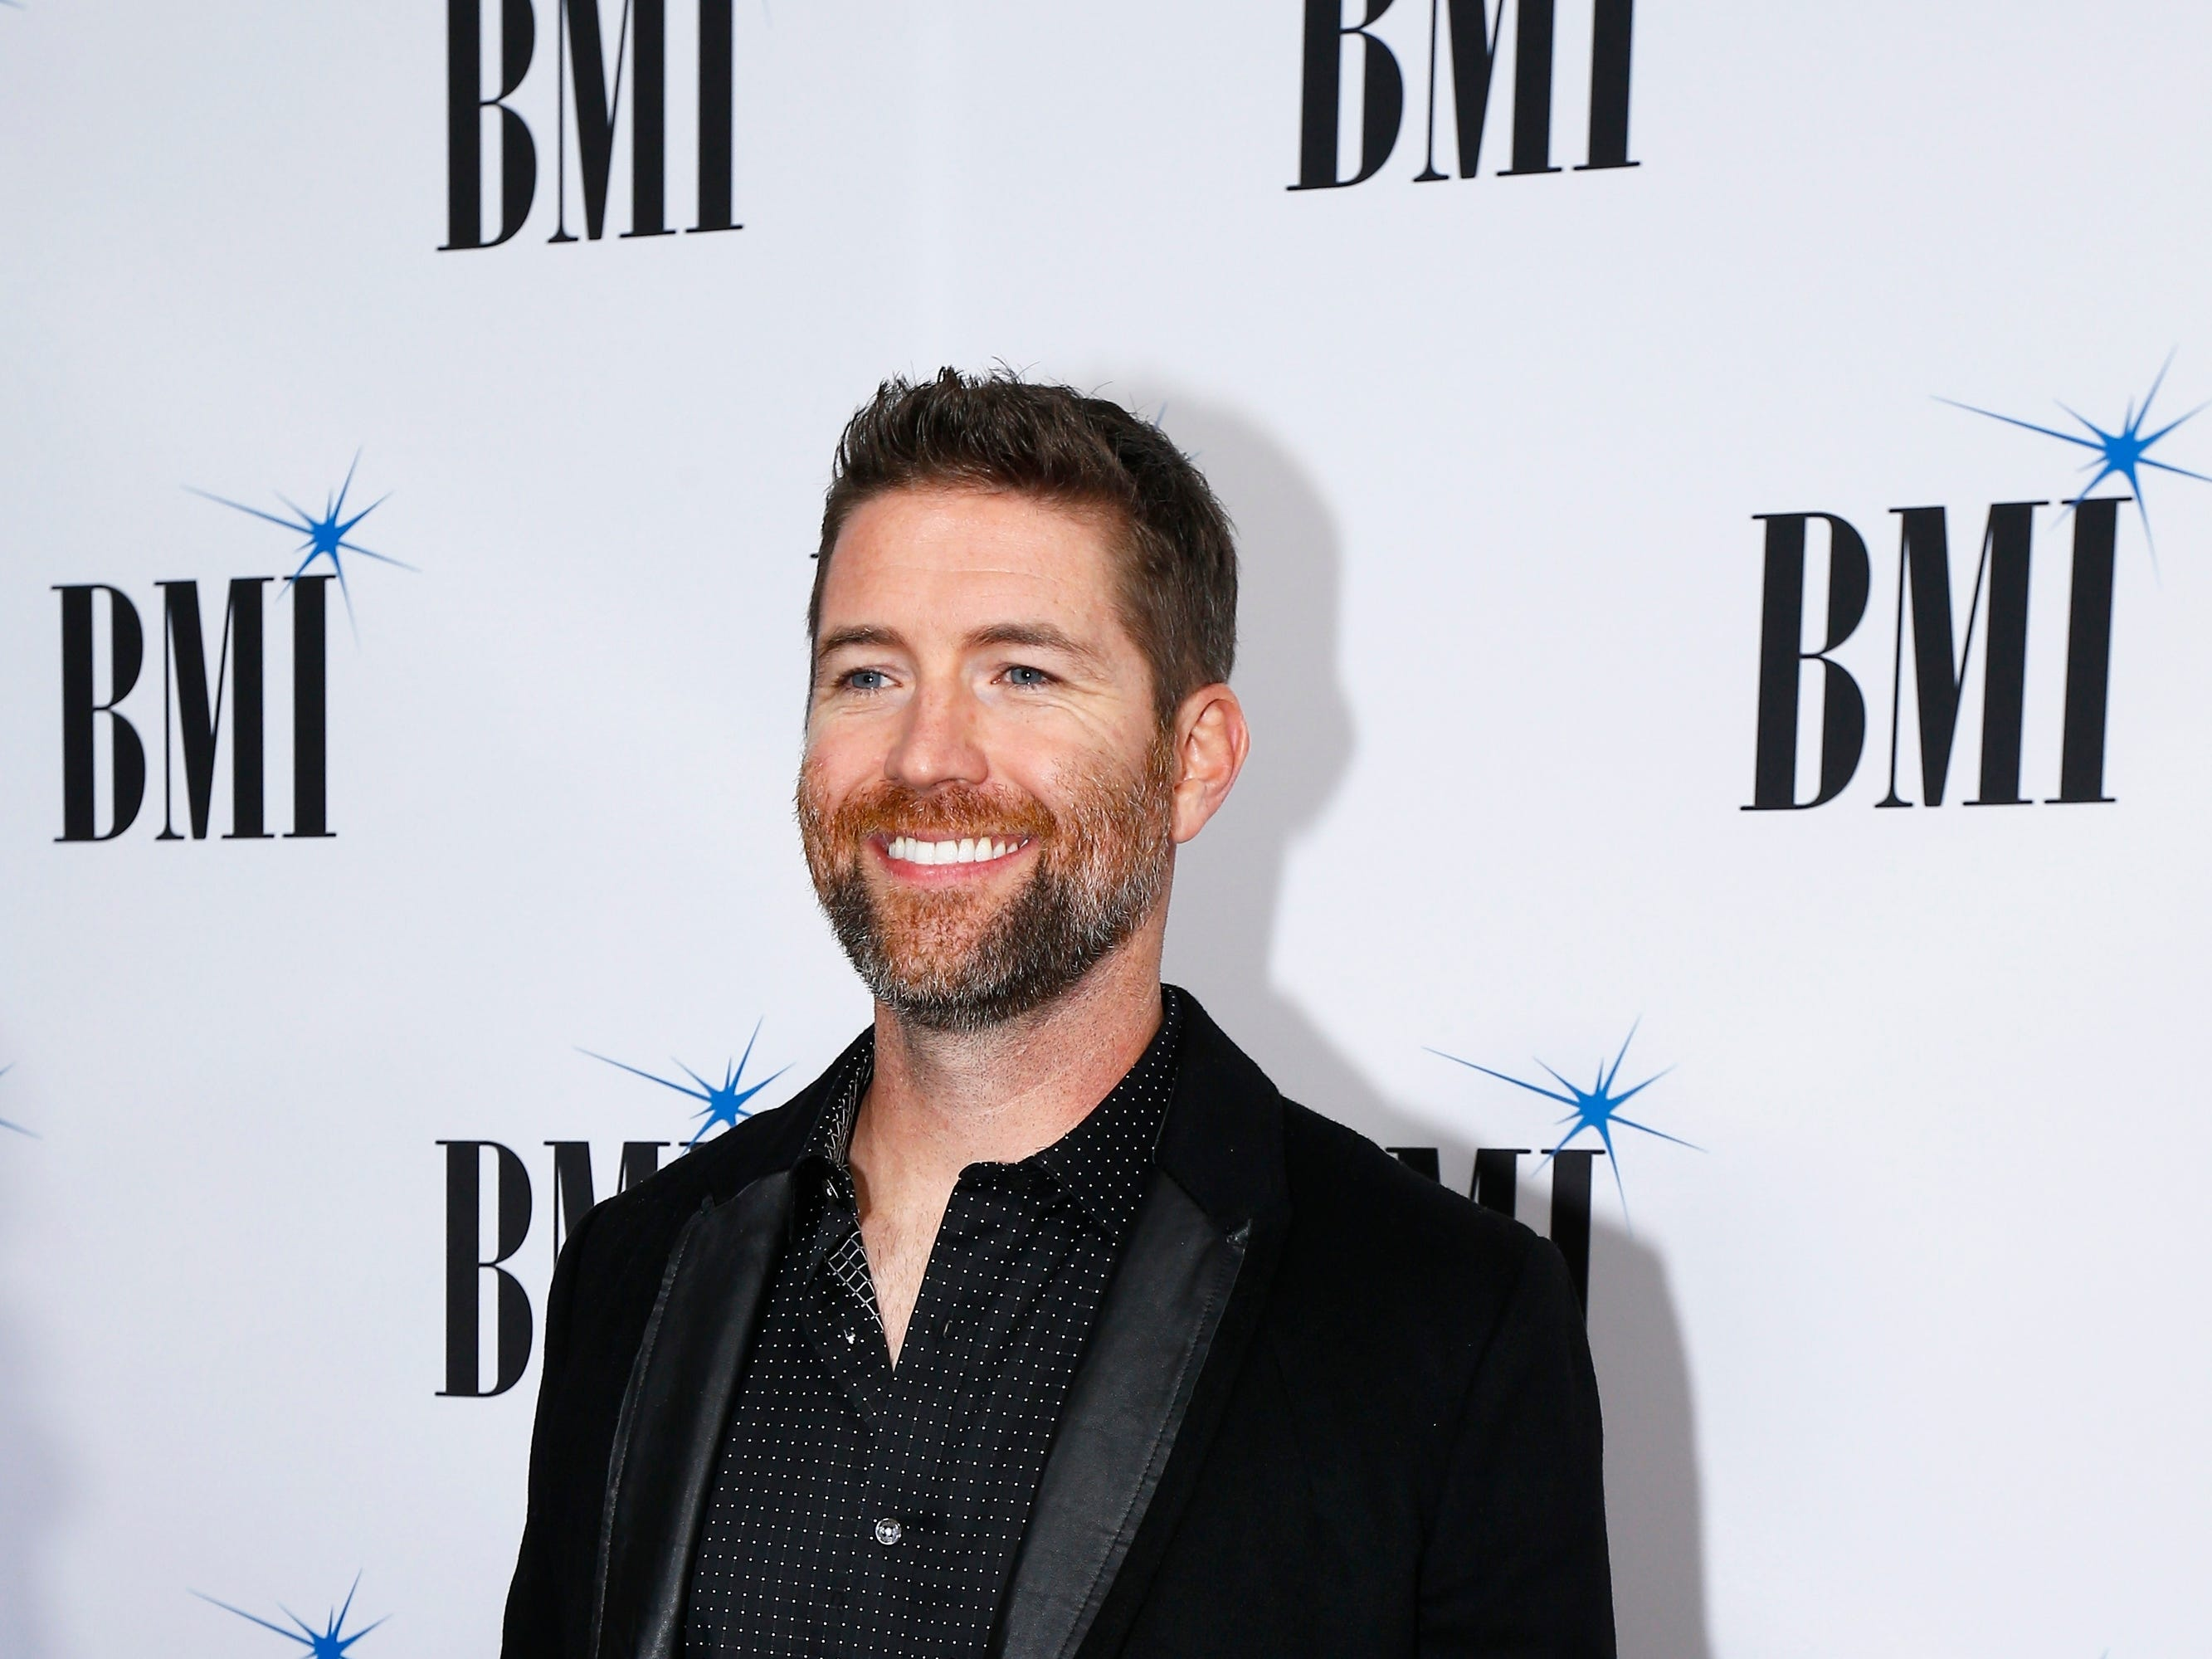 Josh Turner arrives at the BMI Awards at BMI Nashville on Tuesday, Nov. 7, 2017, in Nashville, Tenn. (Photo by Wade Payne/Invision/AP)